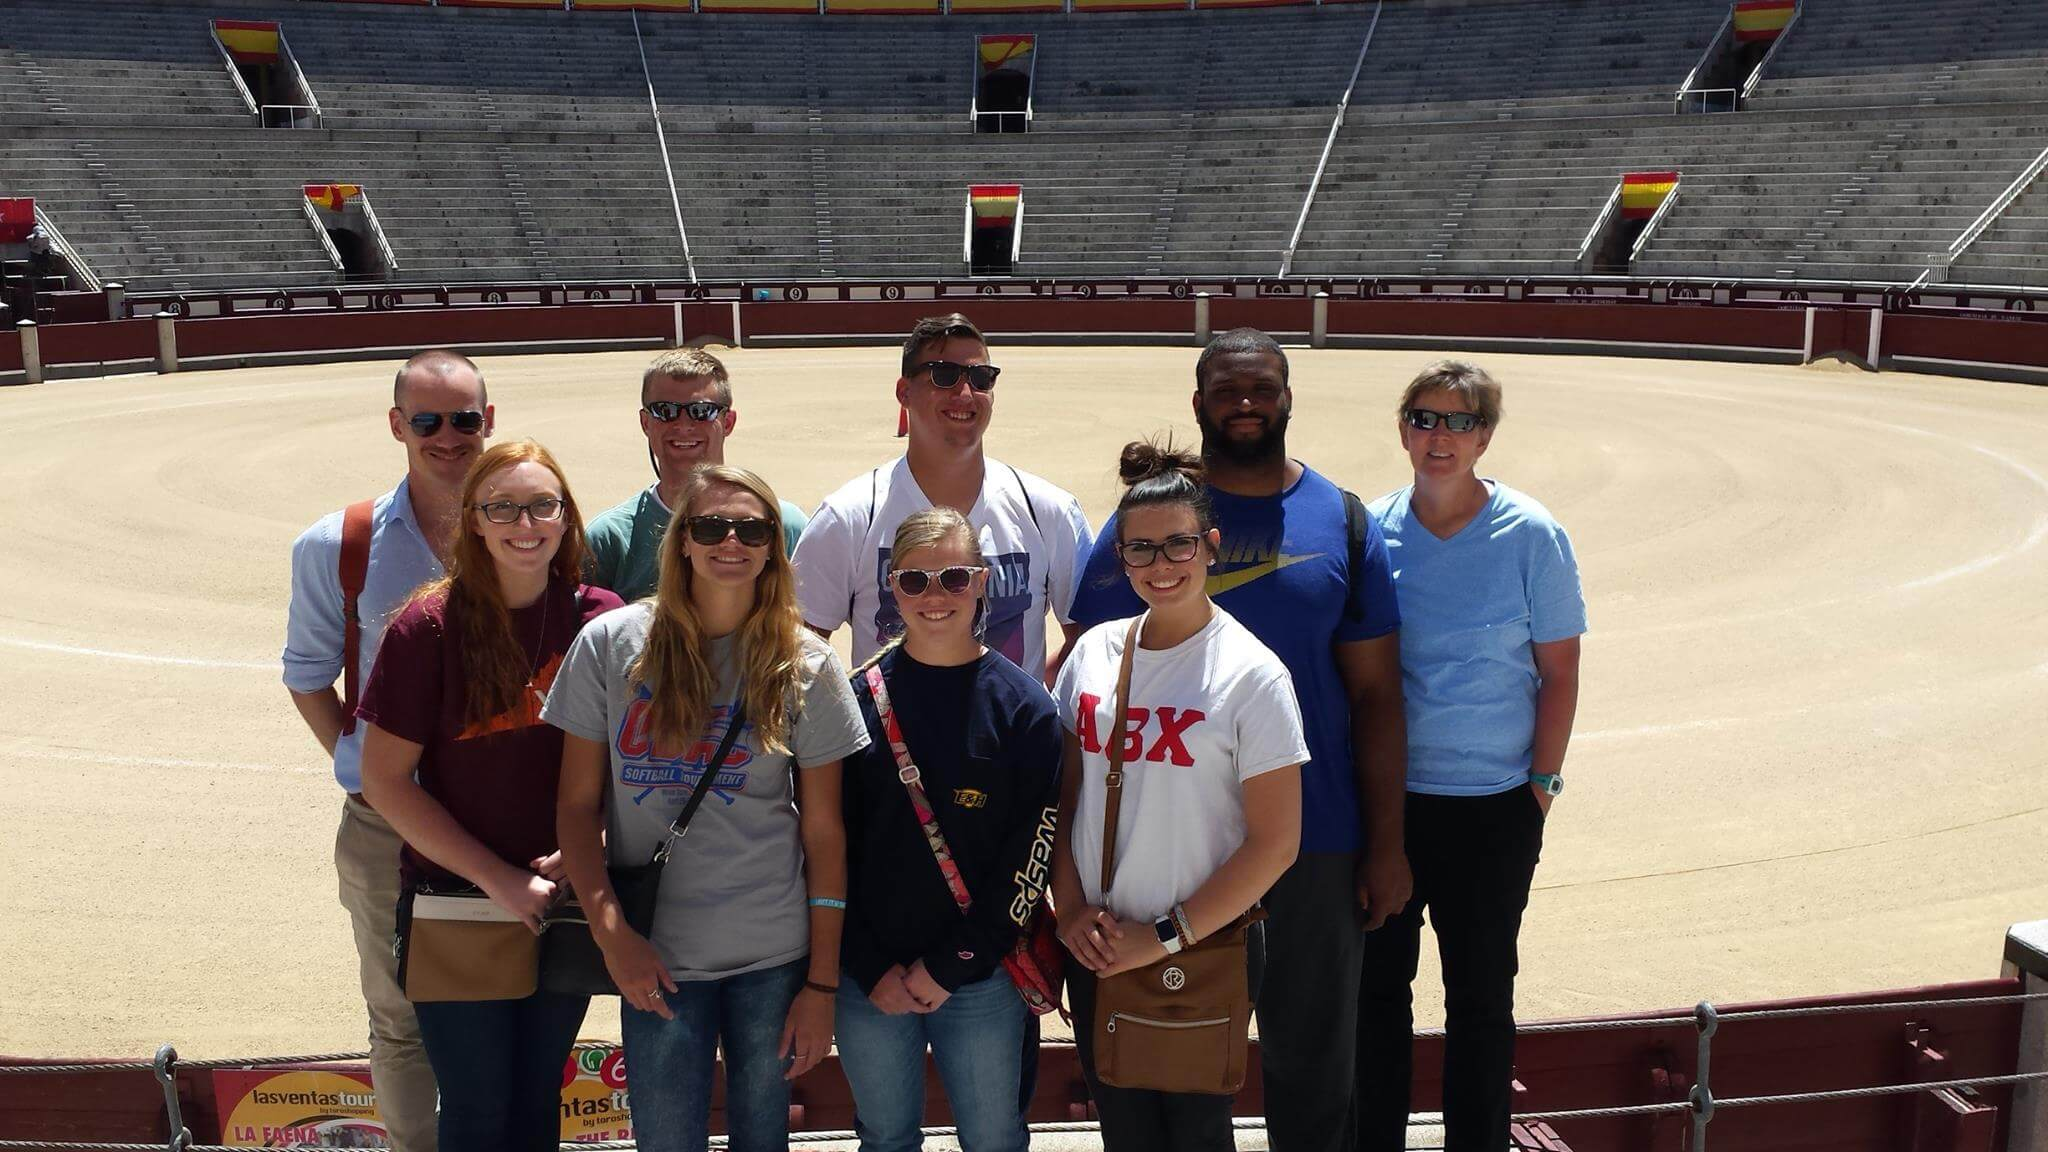 Emory & Henry College Study Abroad students in Spain